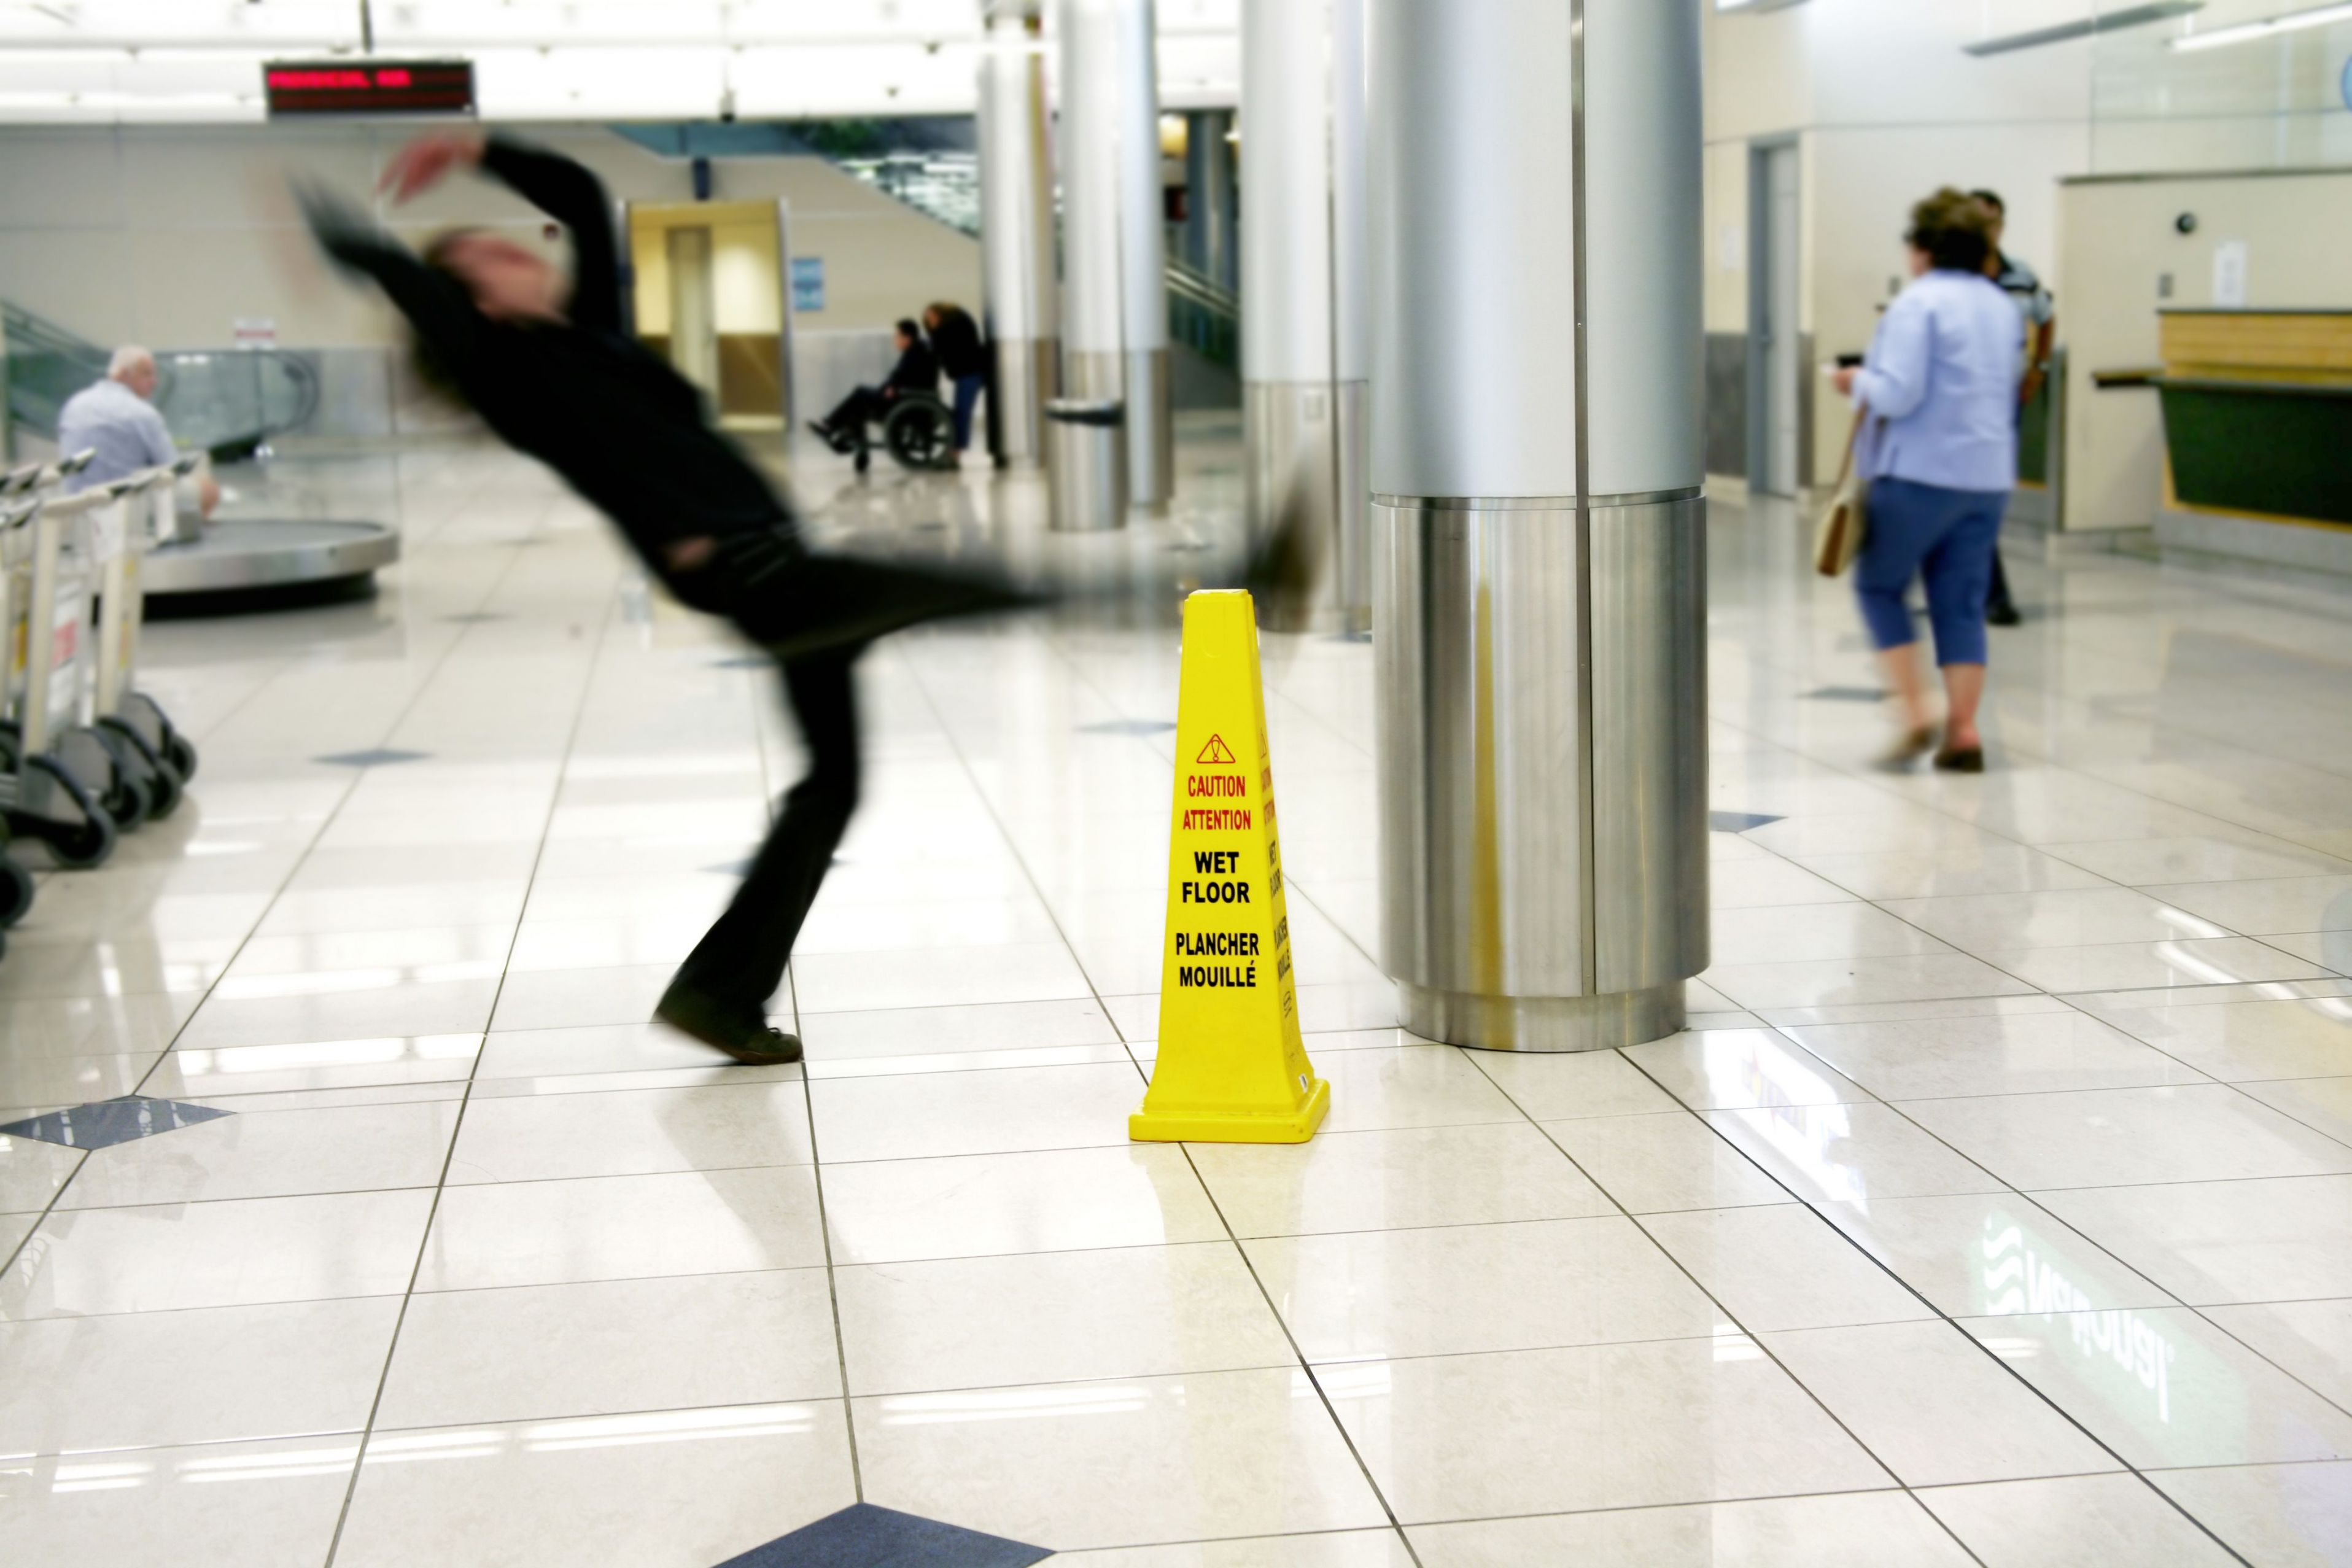 A slip and fall can occur for many reasons and is often due to a property owner's negligence. When someone suffers a slip and fall, the injuries can sometimes be…